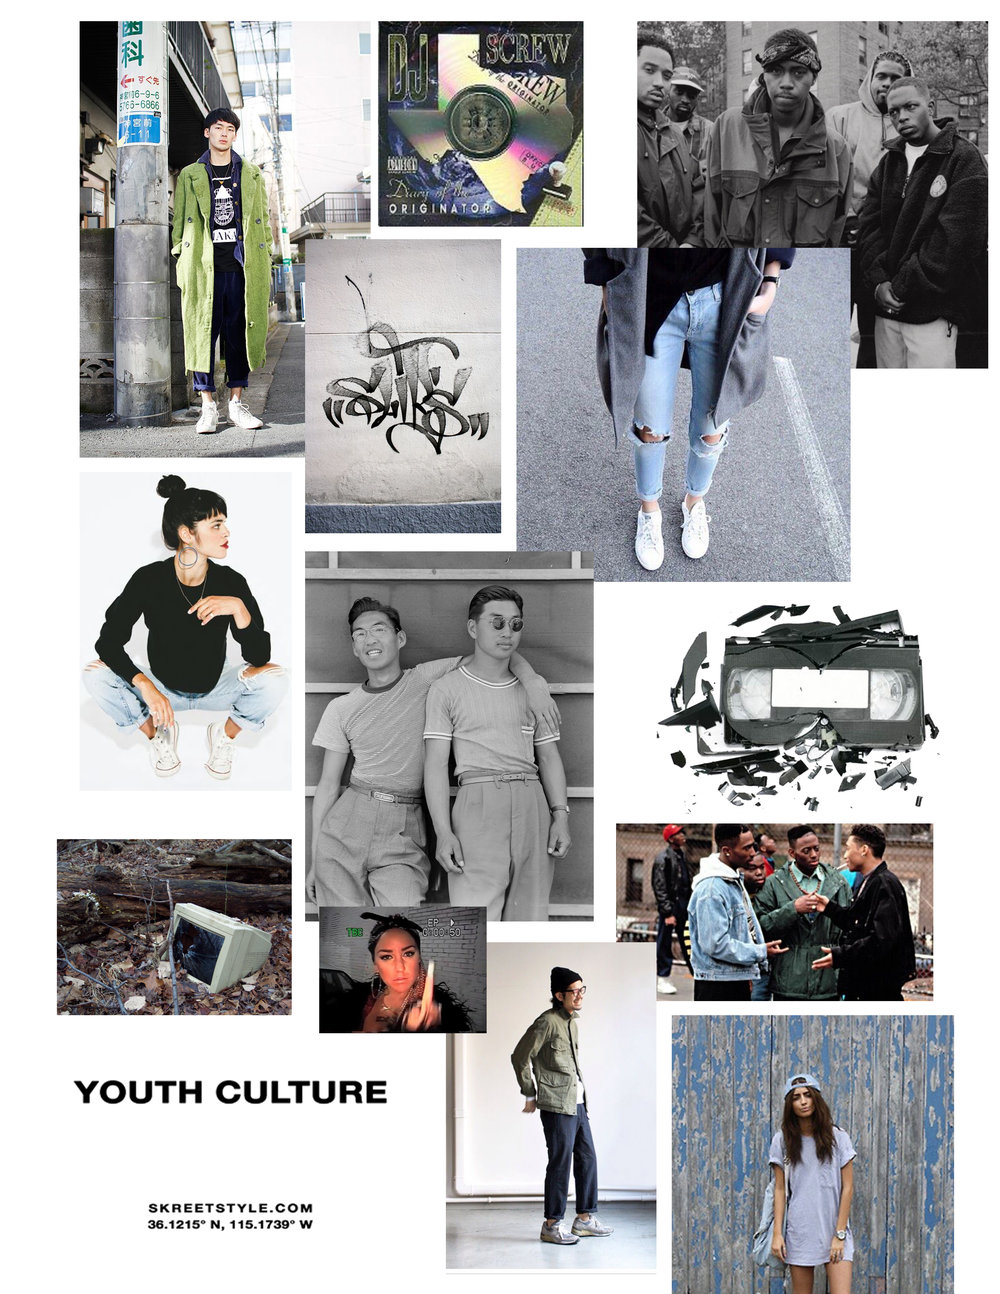 youth culture concept board 2